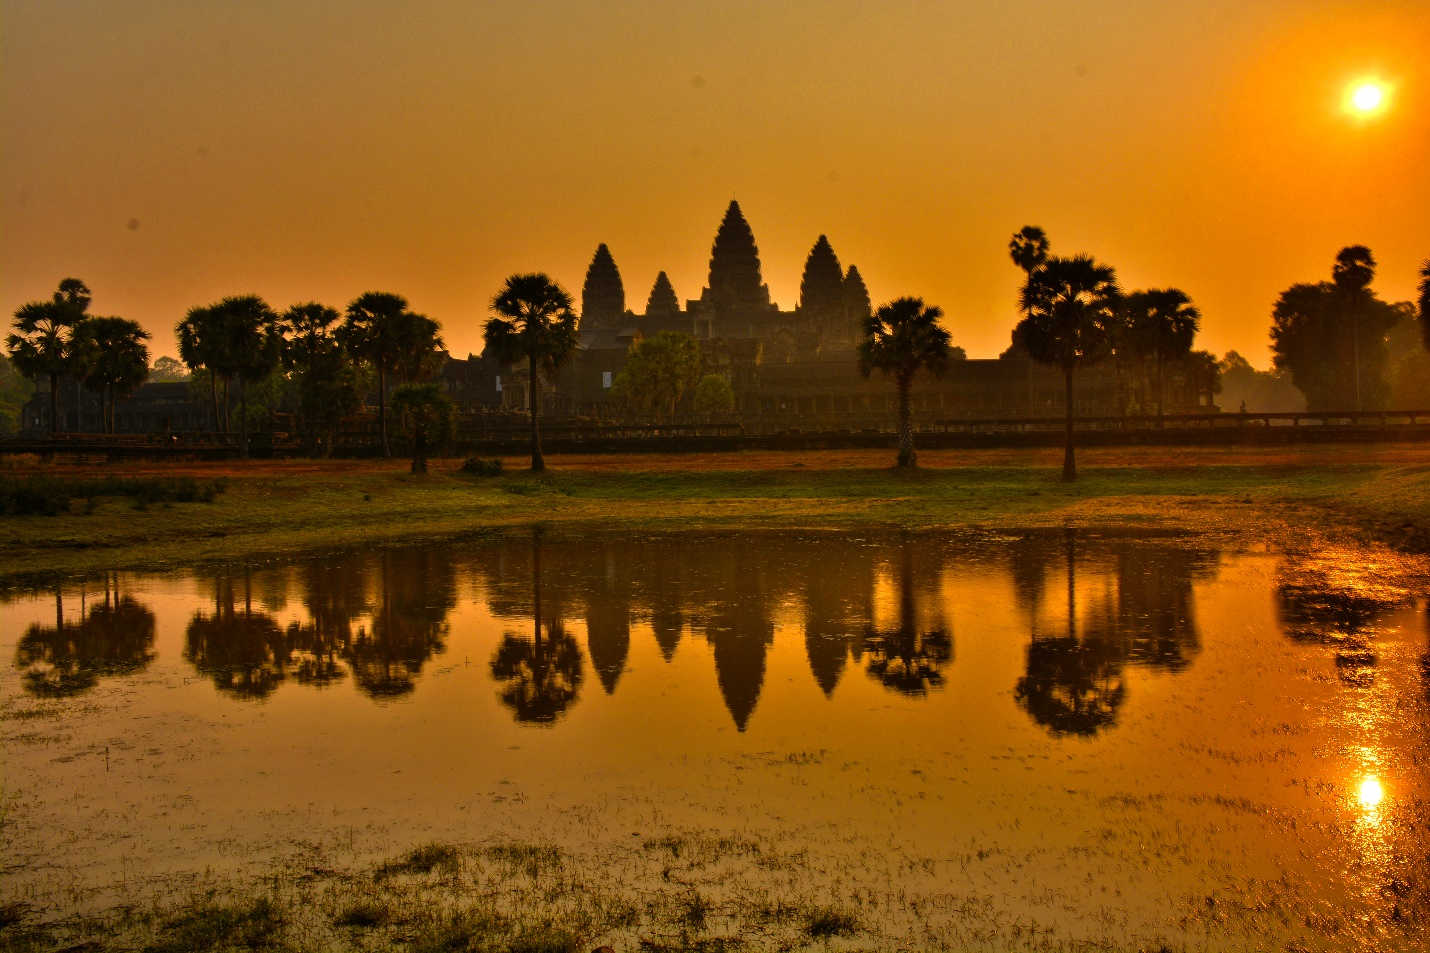 Angkor Wat scenery at the sunris